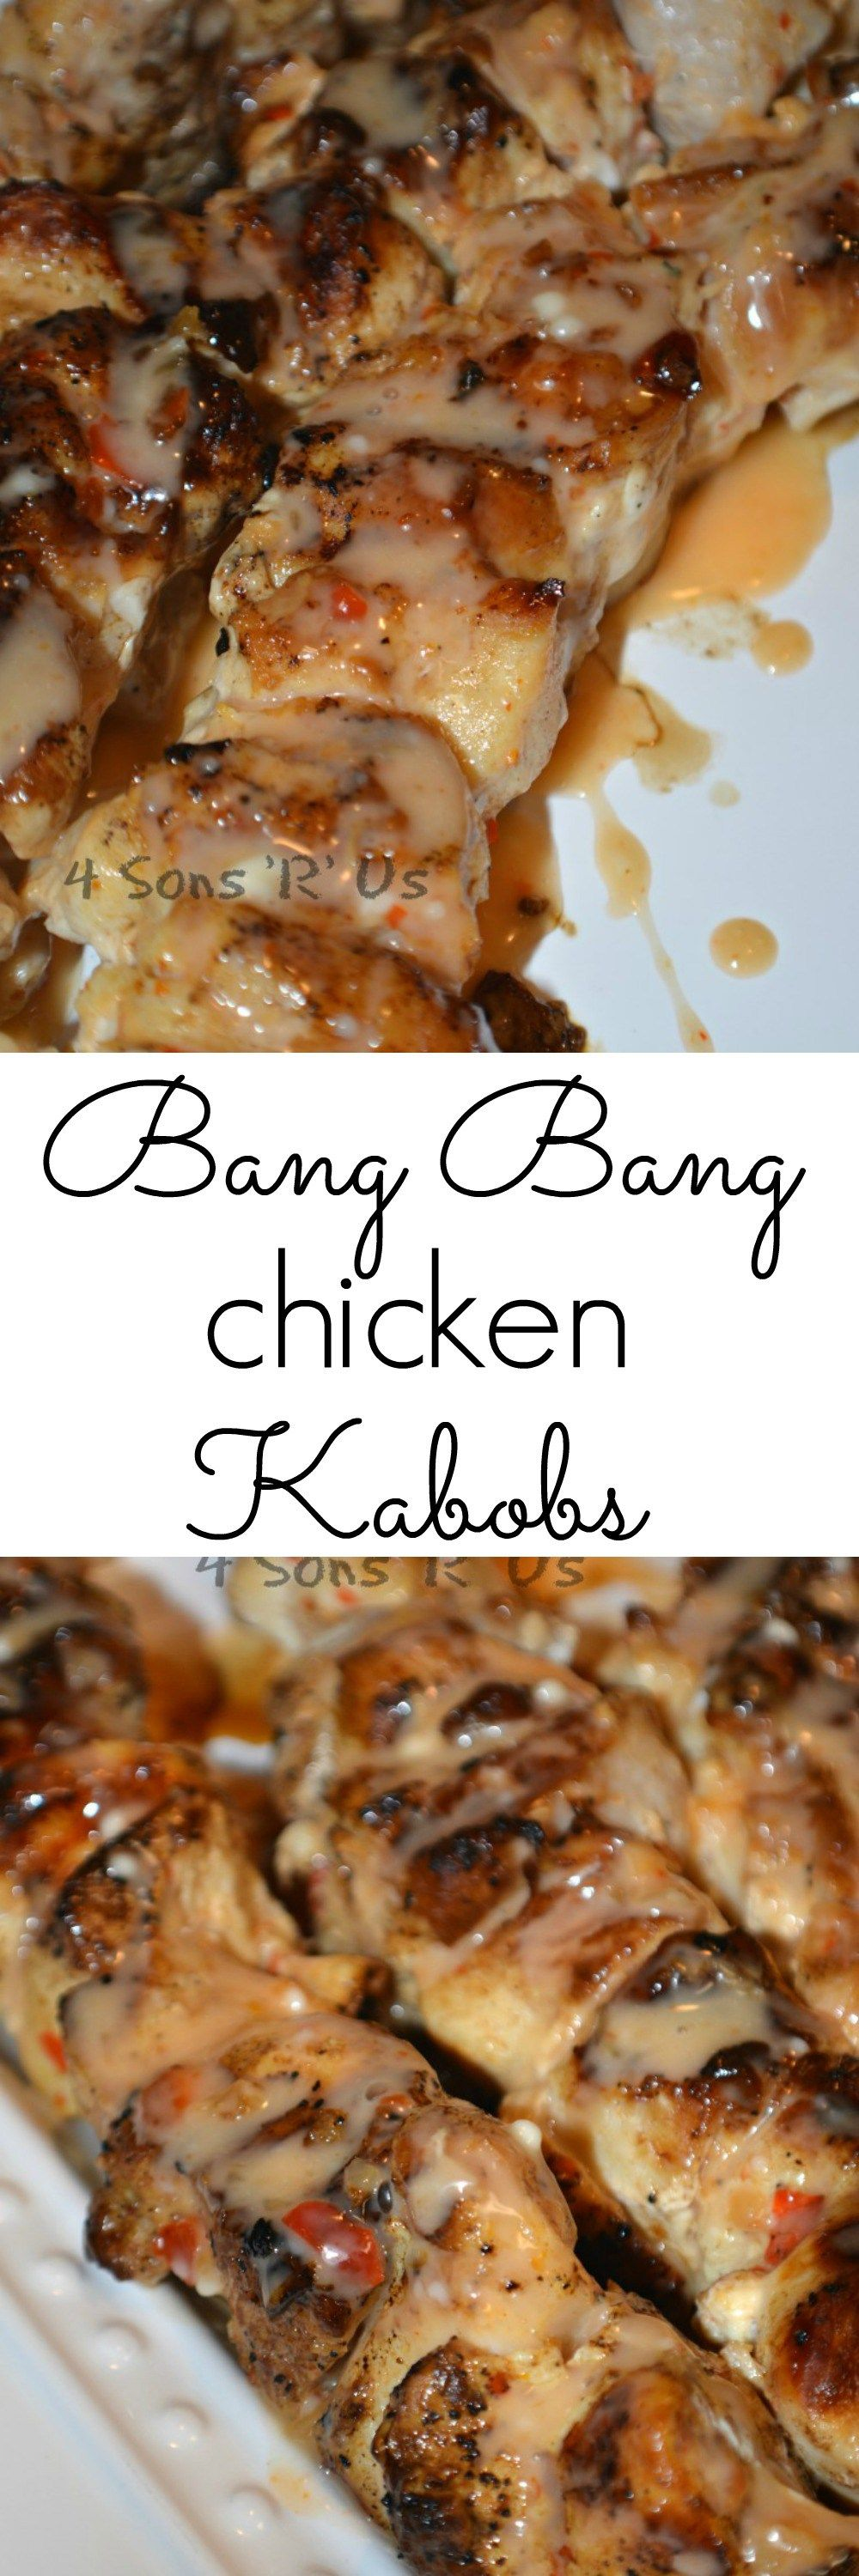 Zo S Kitchen Chicken Kabobs bang bang chicken kabobs: freshly grilled chunky chicken skewers